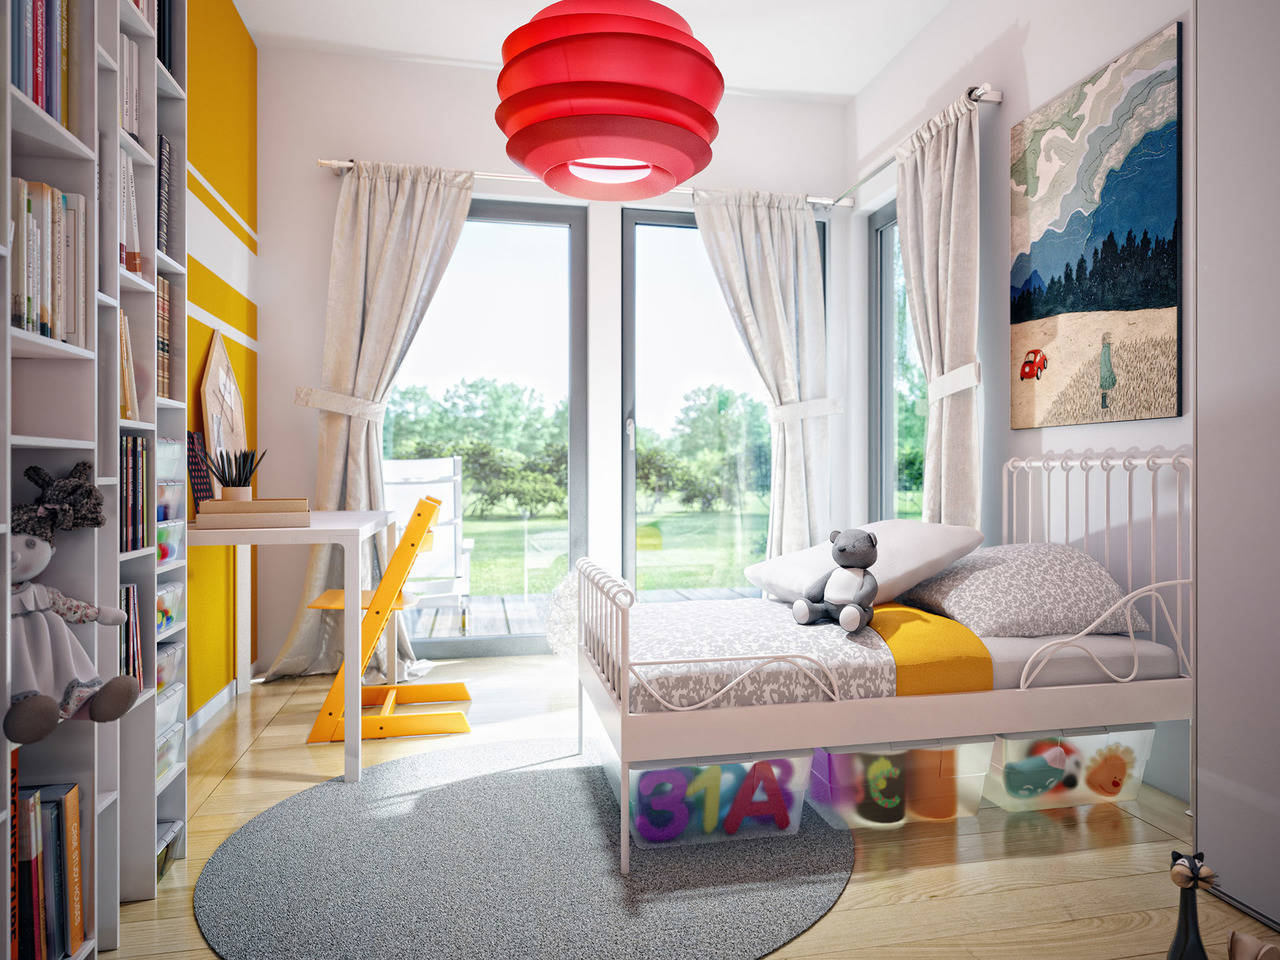 Haus SOLUTION 78 V5 Kinderzimmer von Living Haus